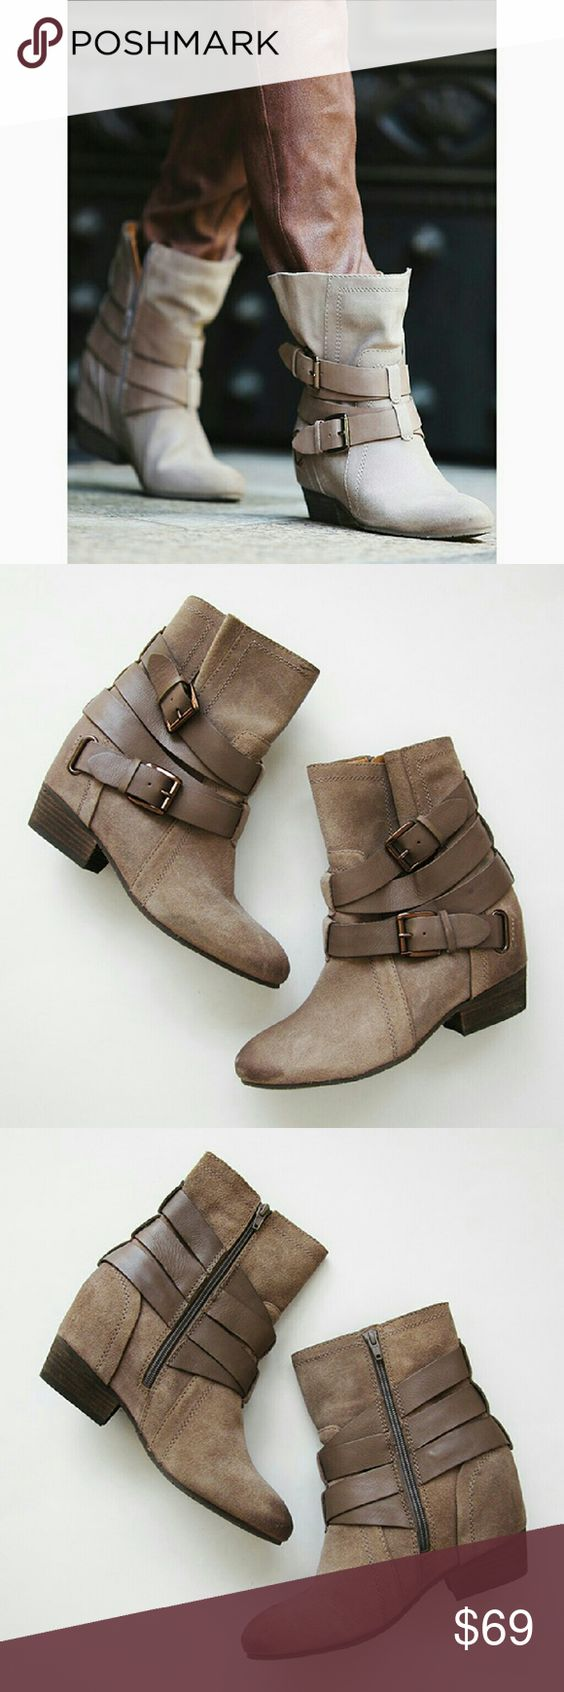 FP NAYA Harlin Hidden Wedge Suede Buckle Boot Suede ankle boots with a hidden wedge. There are some blemishes and marks on the suede but have lots of life left! Brand is Naya. Free People Shoes Ankle Boots & Booties